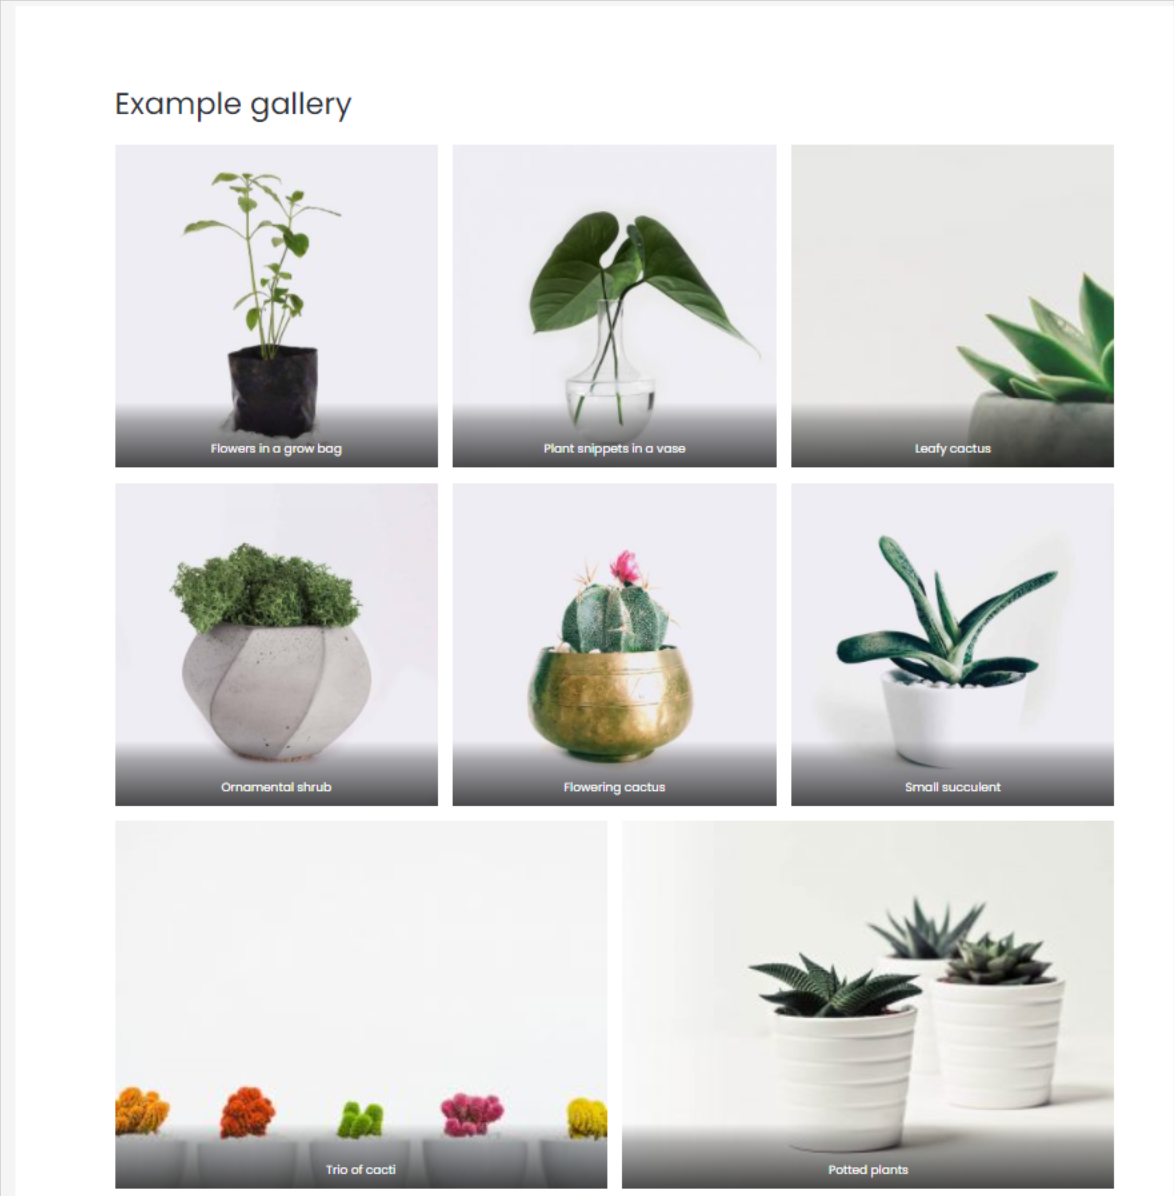 An example gallery is shown with photographs of potted plants.